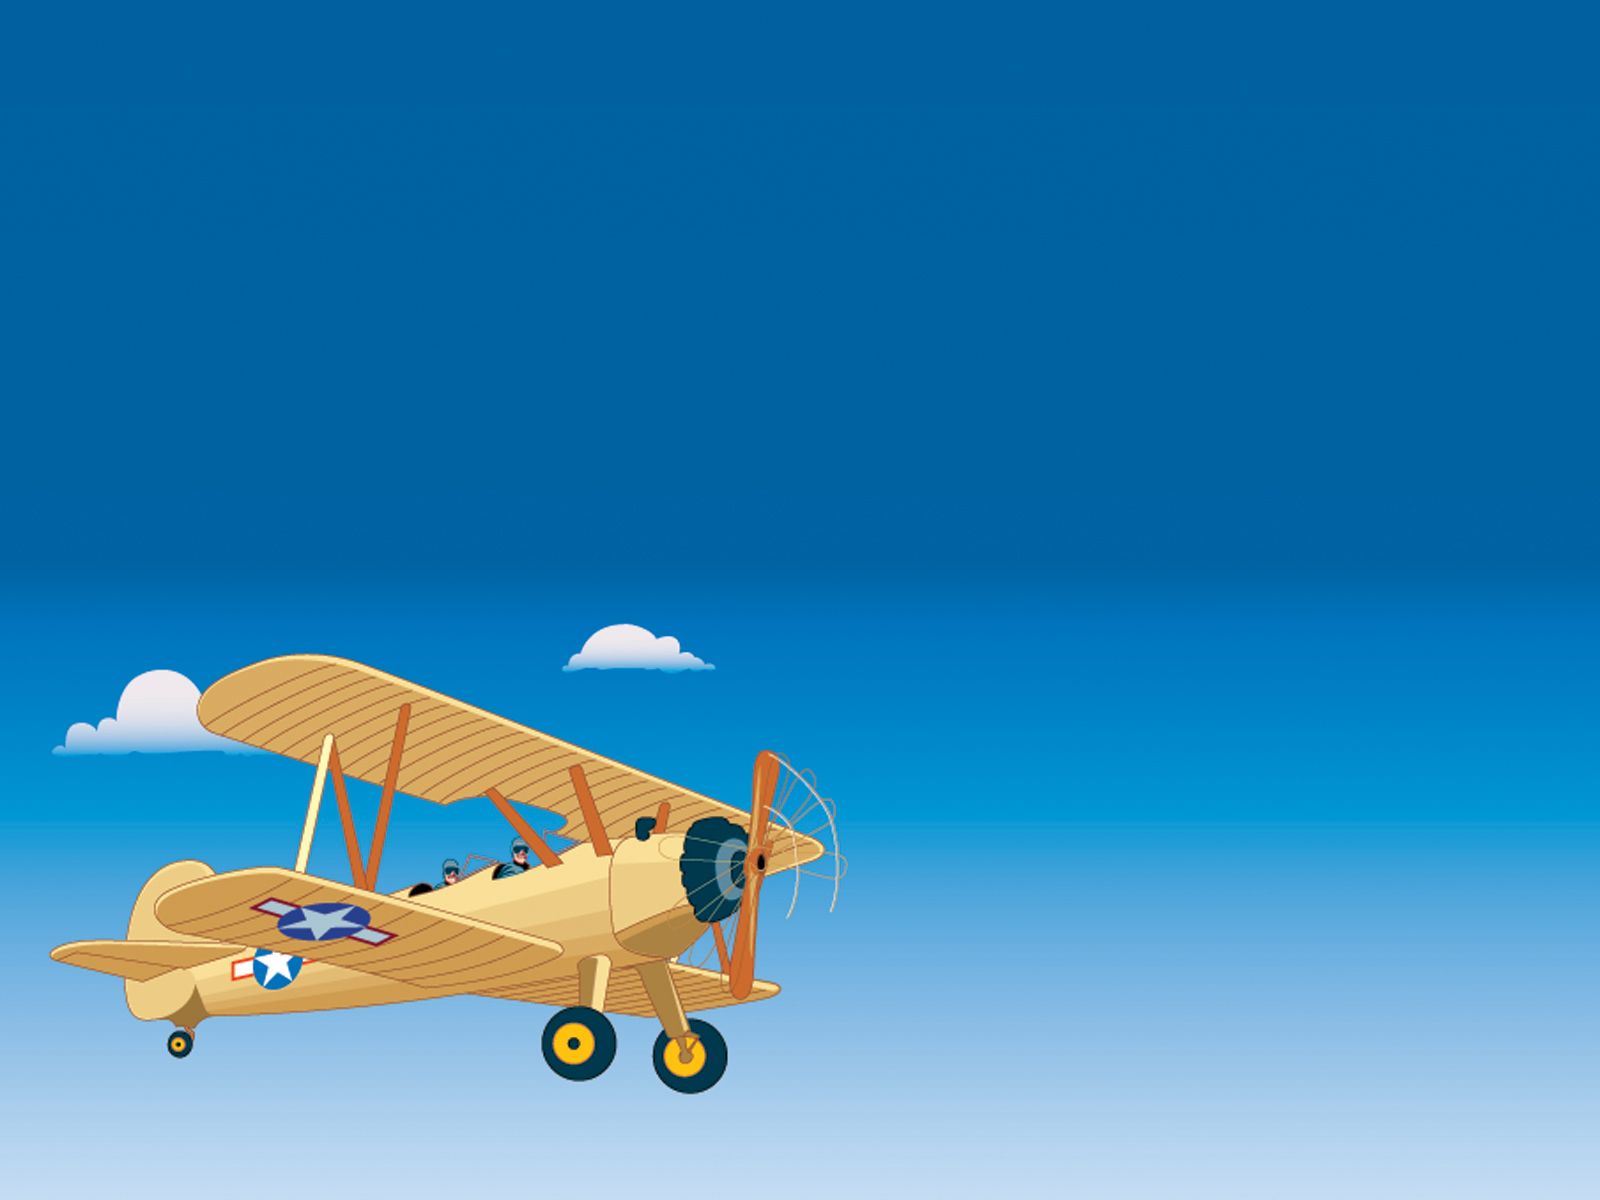 Imghdnet Provide Top Vintage Airplane Wallpapers in Various size 1600x1200